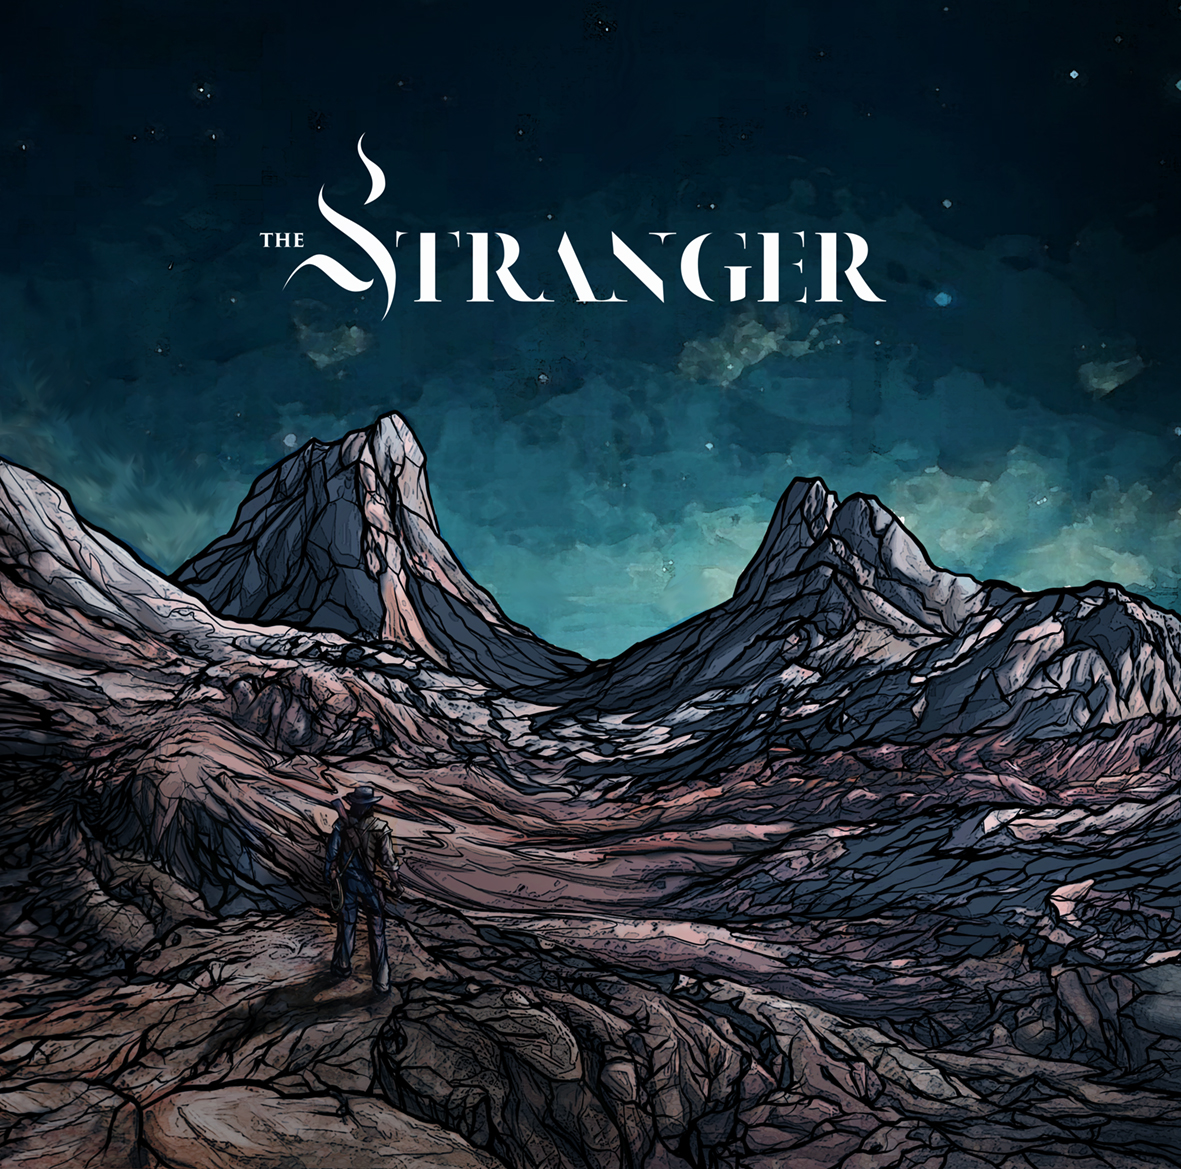 The Stranger: Debut Album